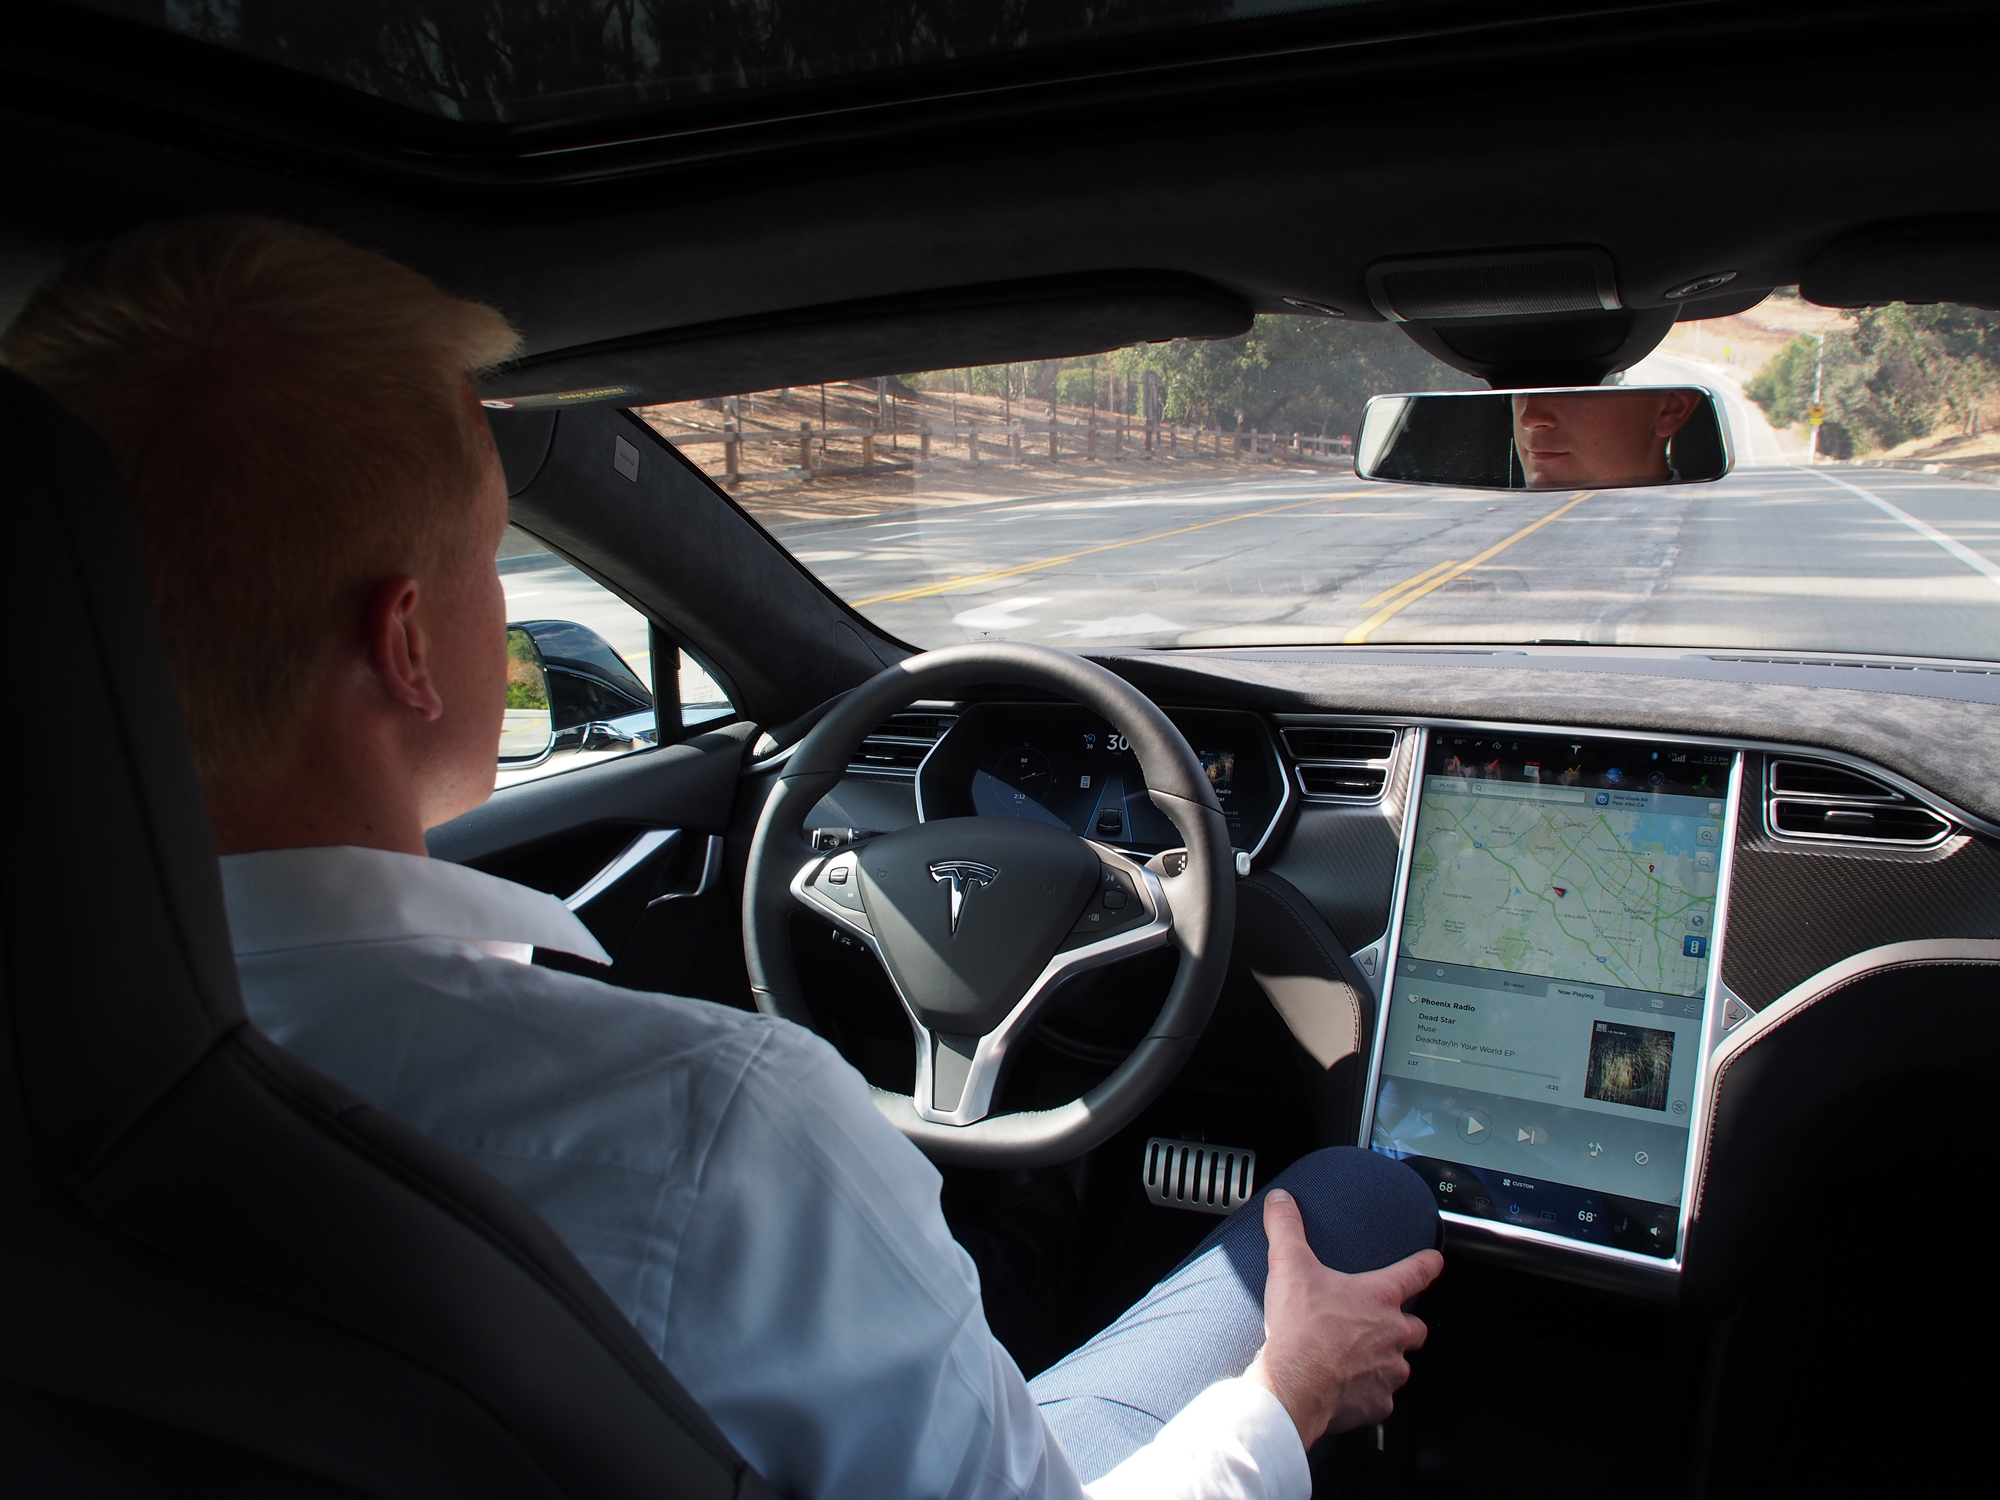 Photo of also machine tools? The autopilot in Tesla's vehicle hijacked a traffic report